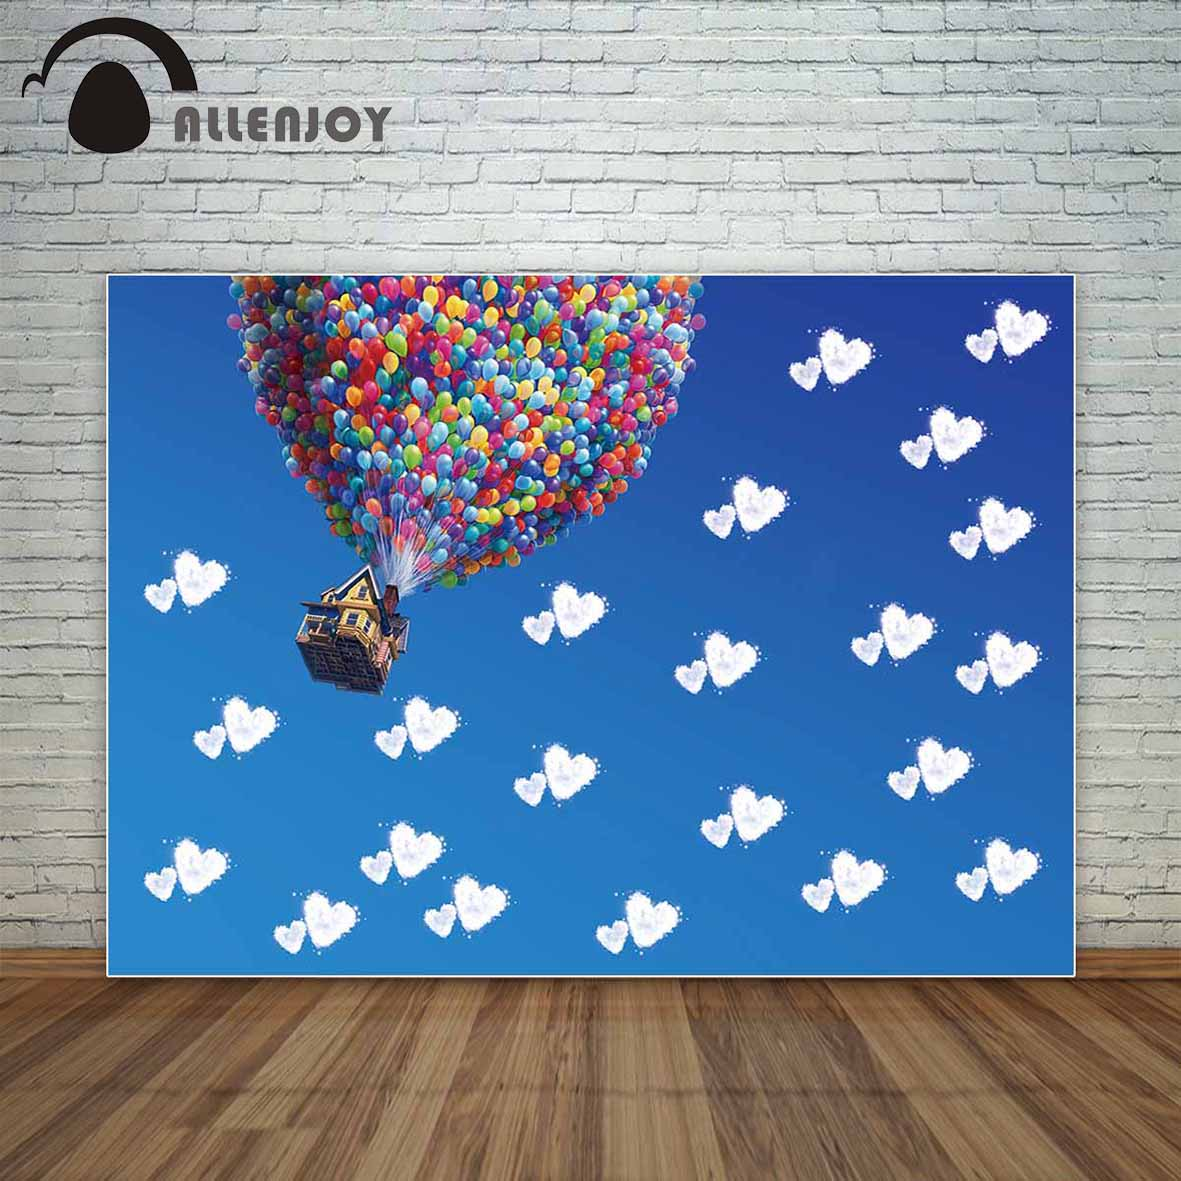 Allenjoy photo background wedding backgrounds balloon house cloud sky heart party backdrop new born photography for photo studio